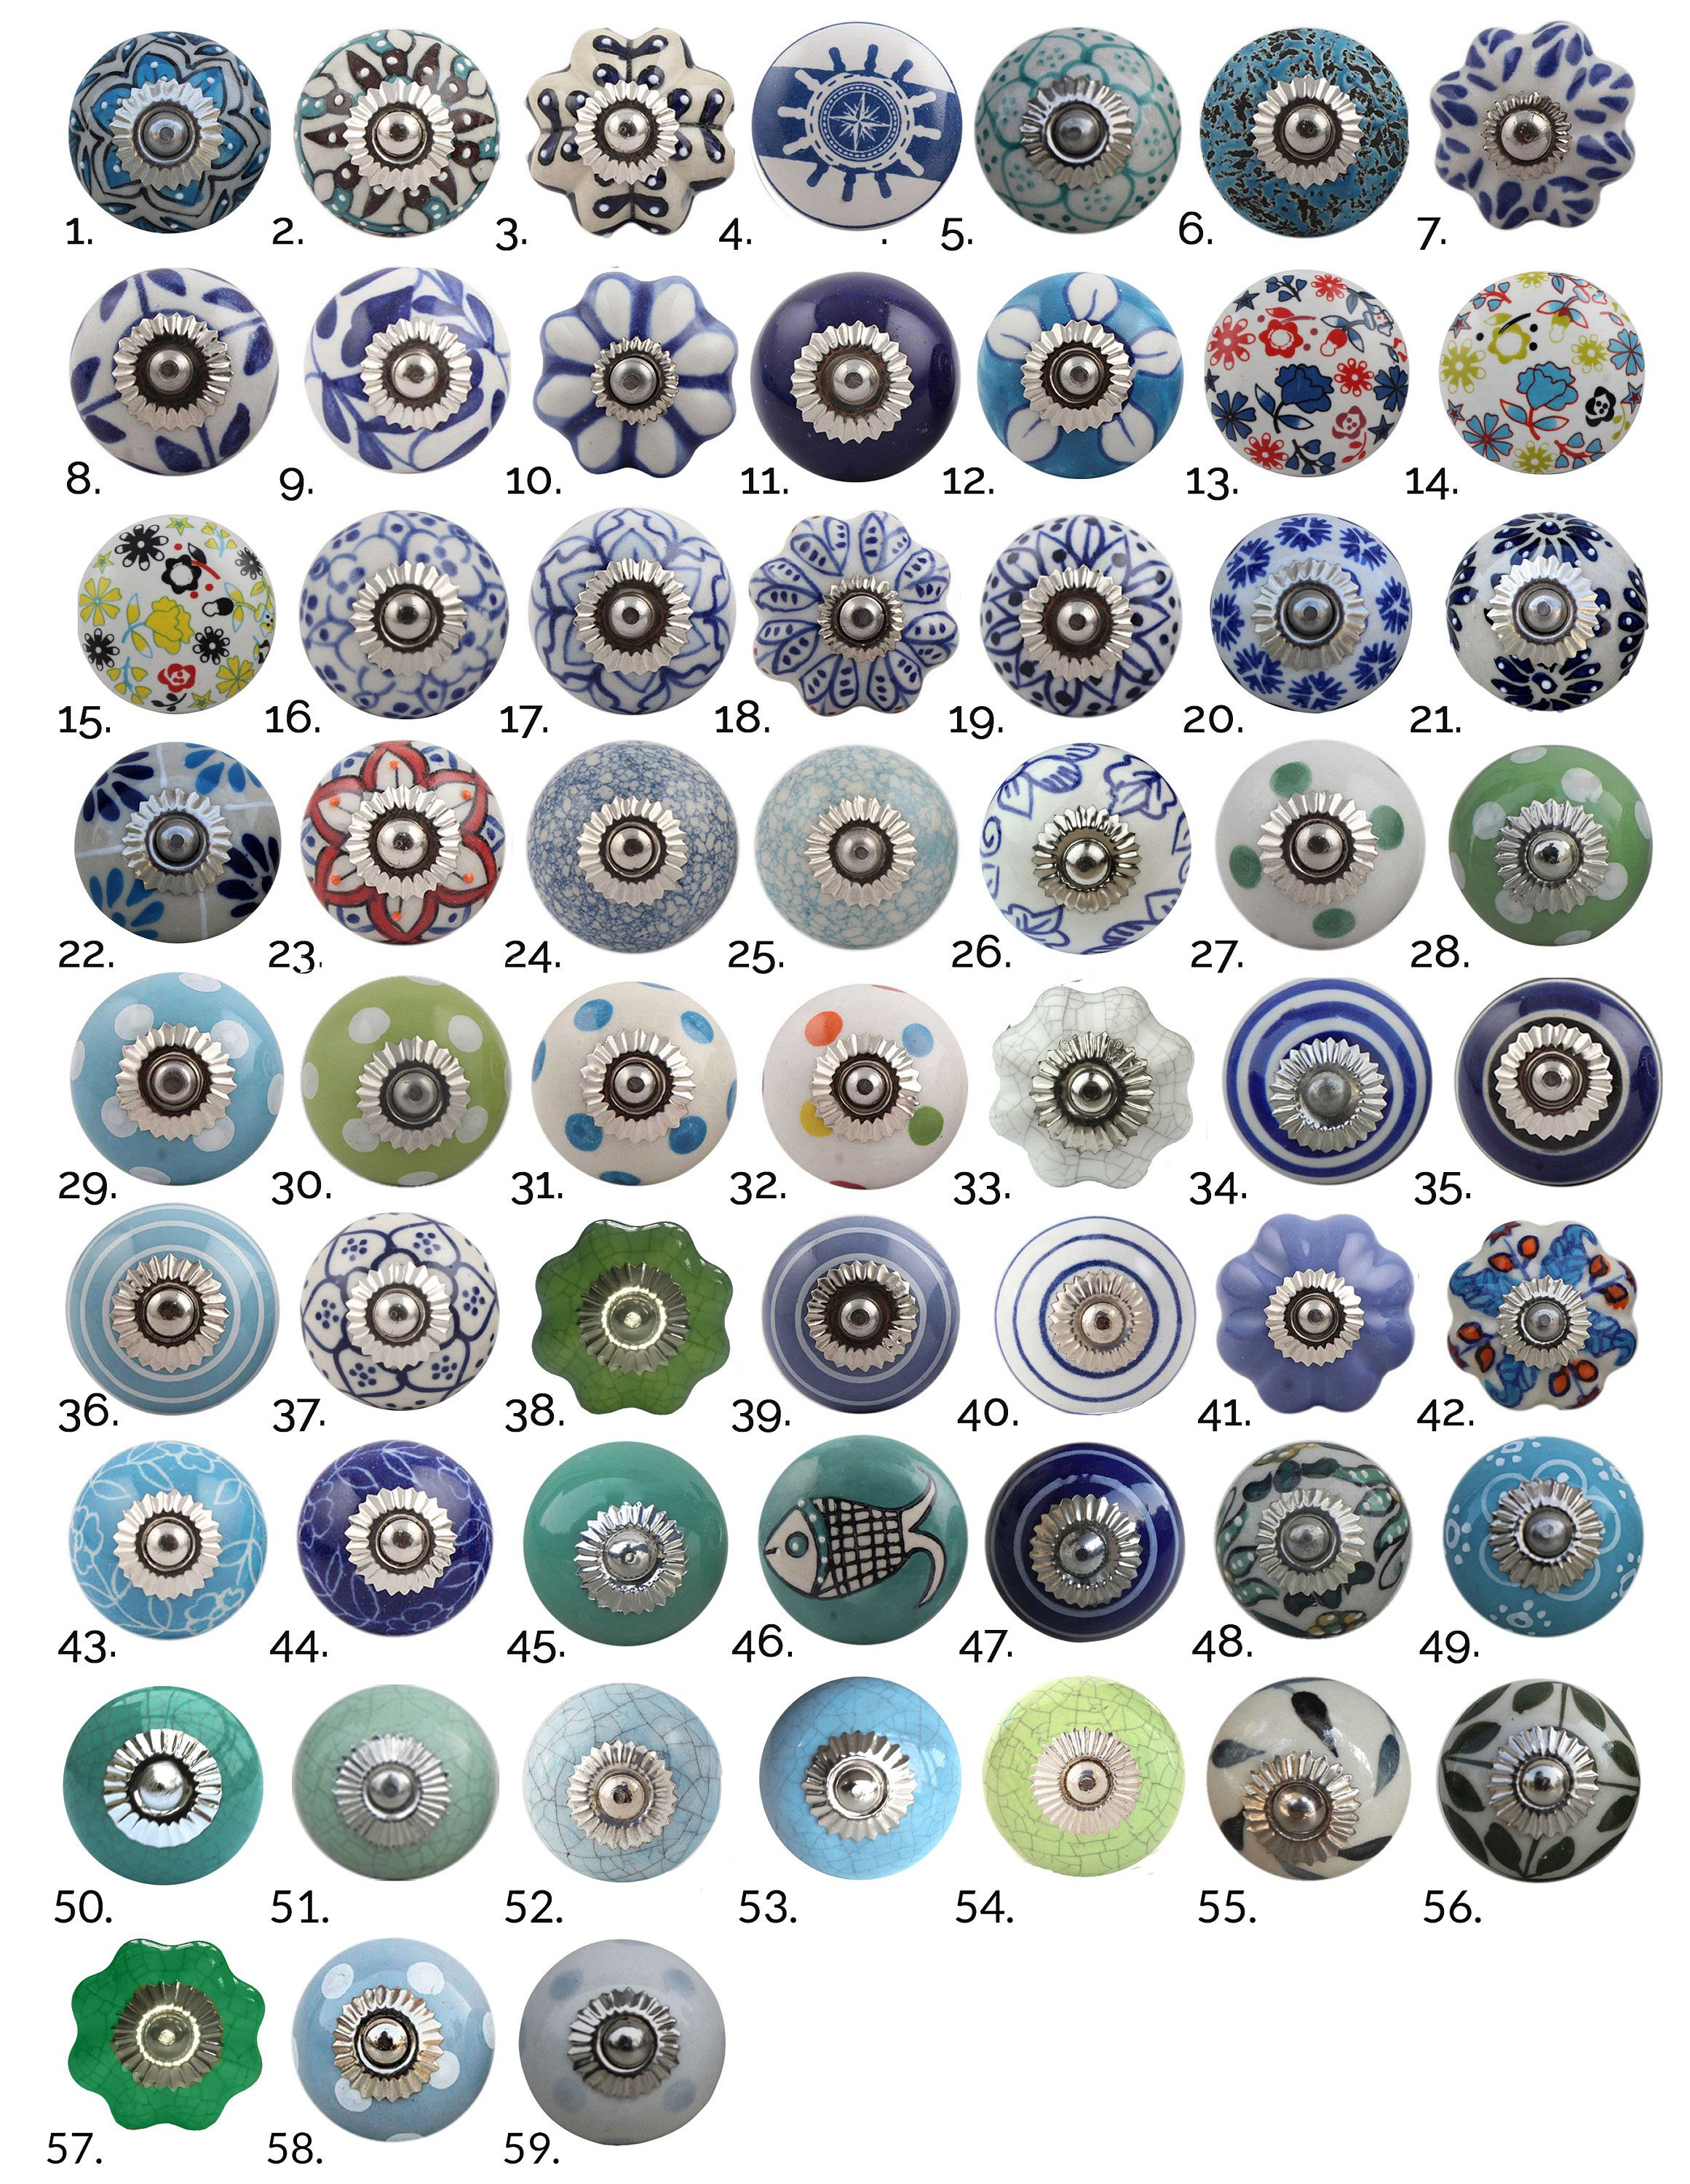 Blue Green Ceramic Cabinet Knobs | Furniture Door Knobs in Various ...